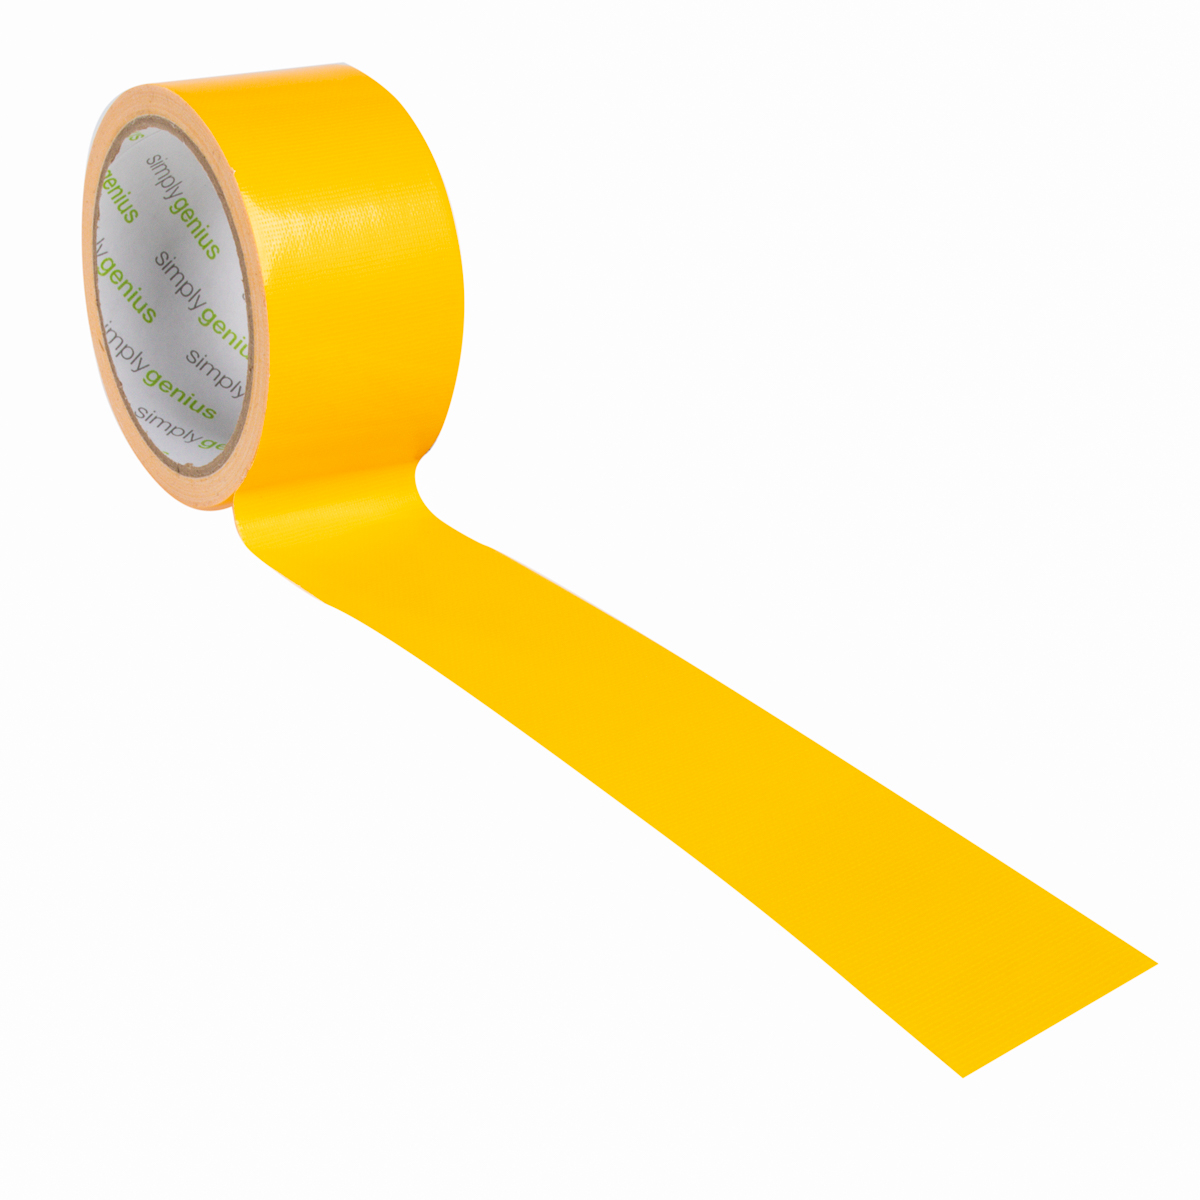 Simply-Genius-Duct-Tape-Roll-Colors-Patterns-Craft-Supplies-Colored-amp-Patterned thumbnail 201